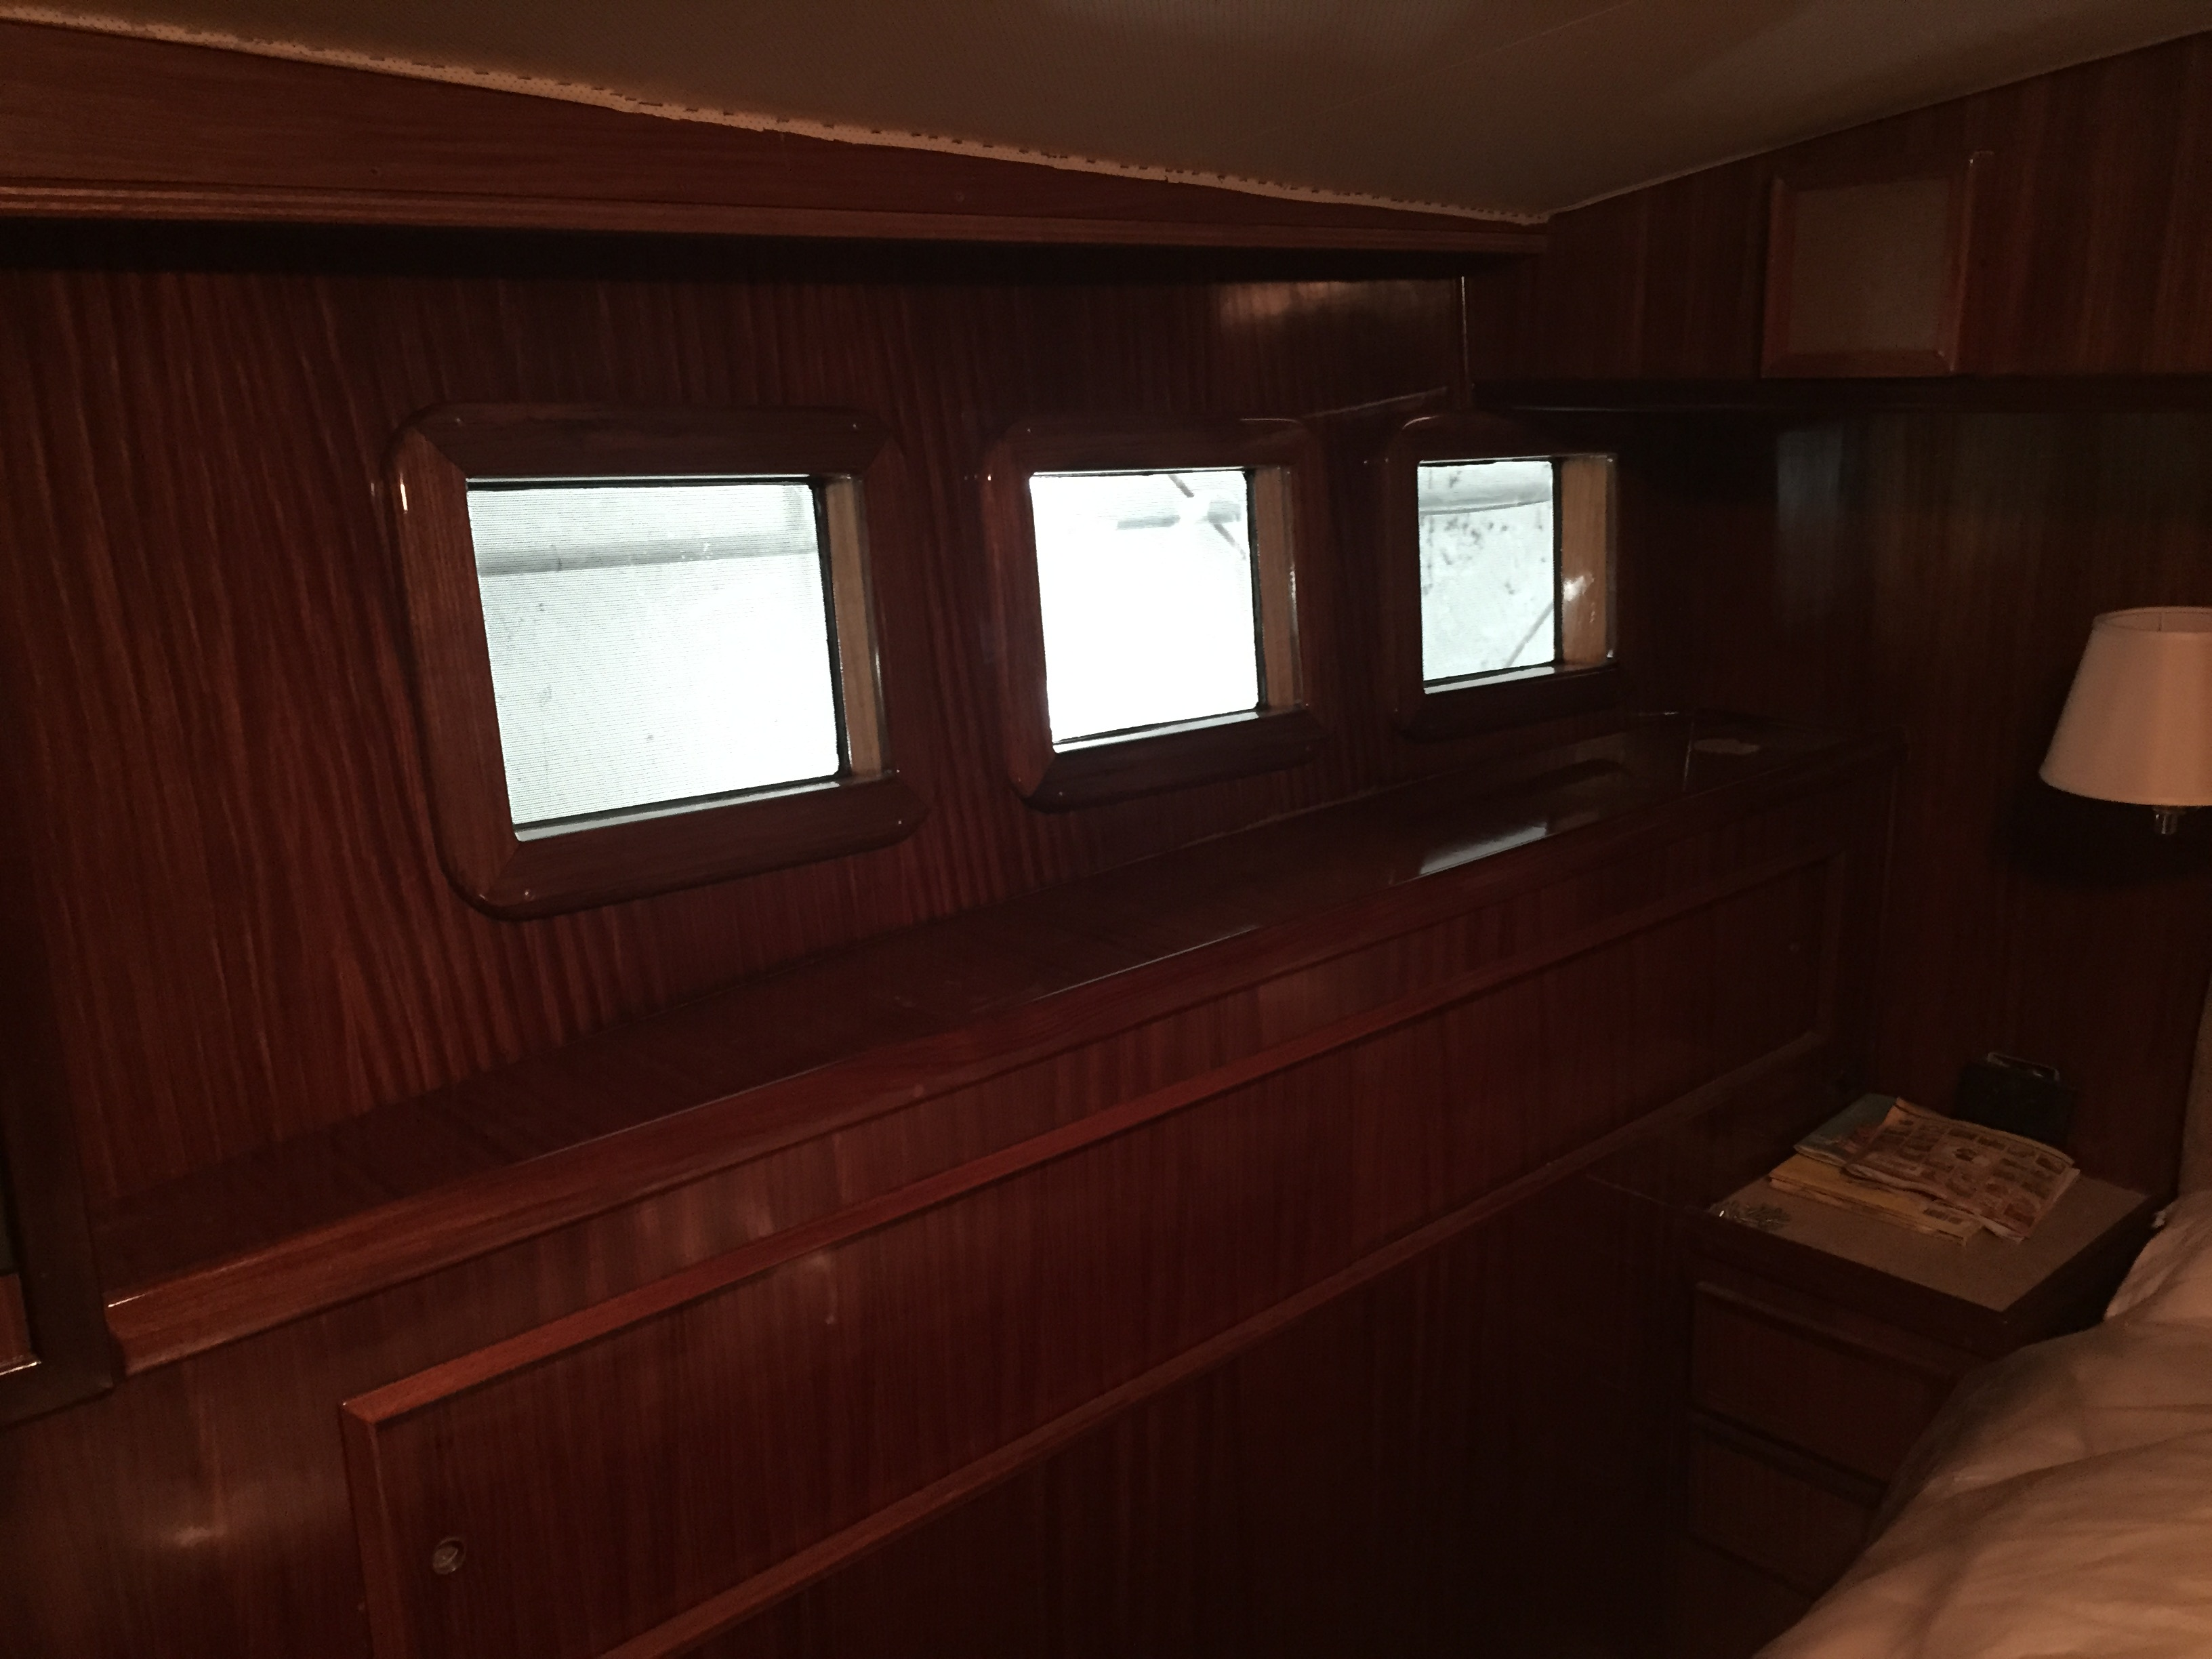 Hatteras 55 convertible interior trim lookout boat window lookout boat windows for Mr trim convertible tops and interiors